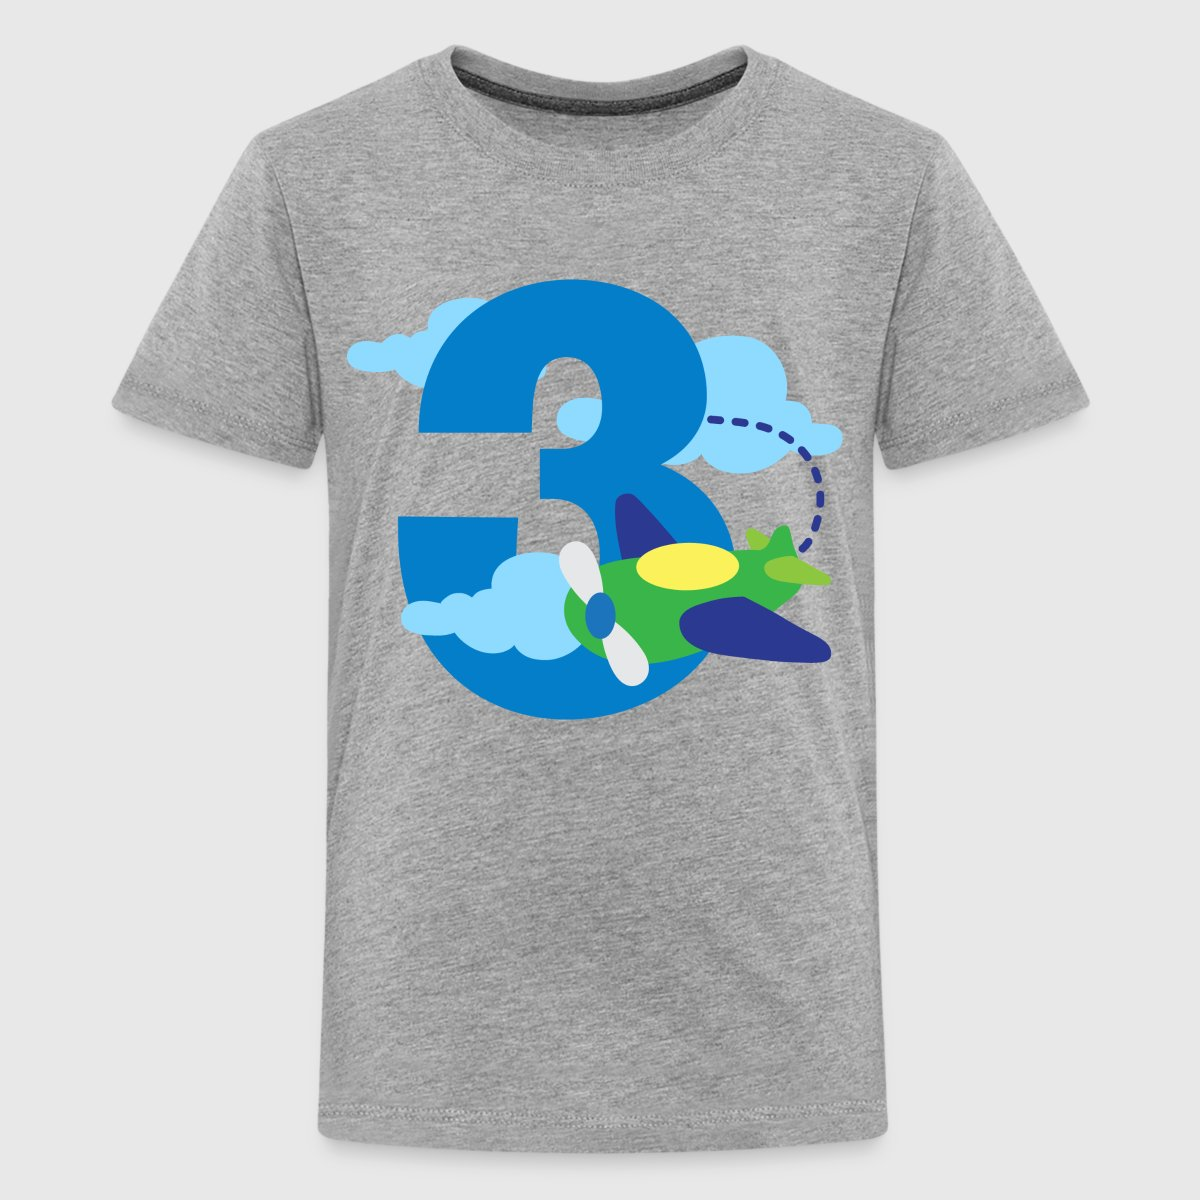 Birthday Shirt For 1 Year Old Boy